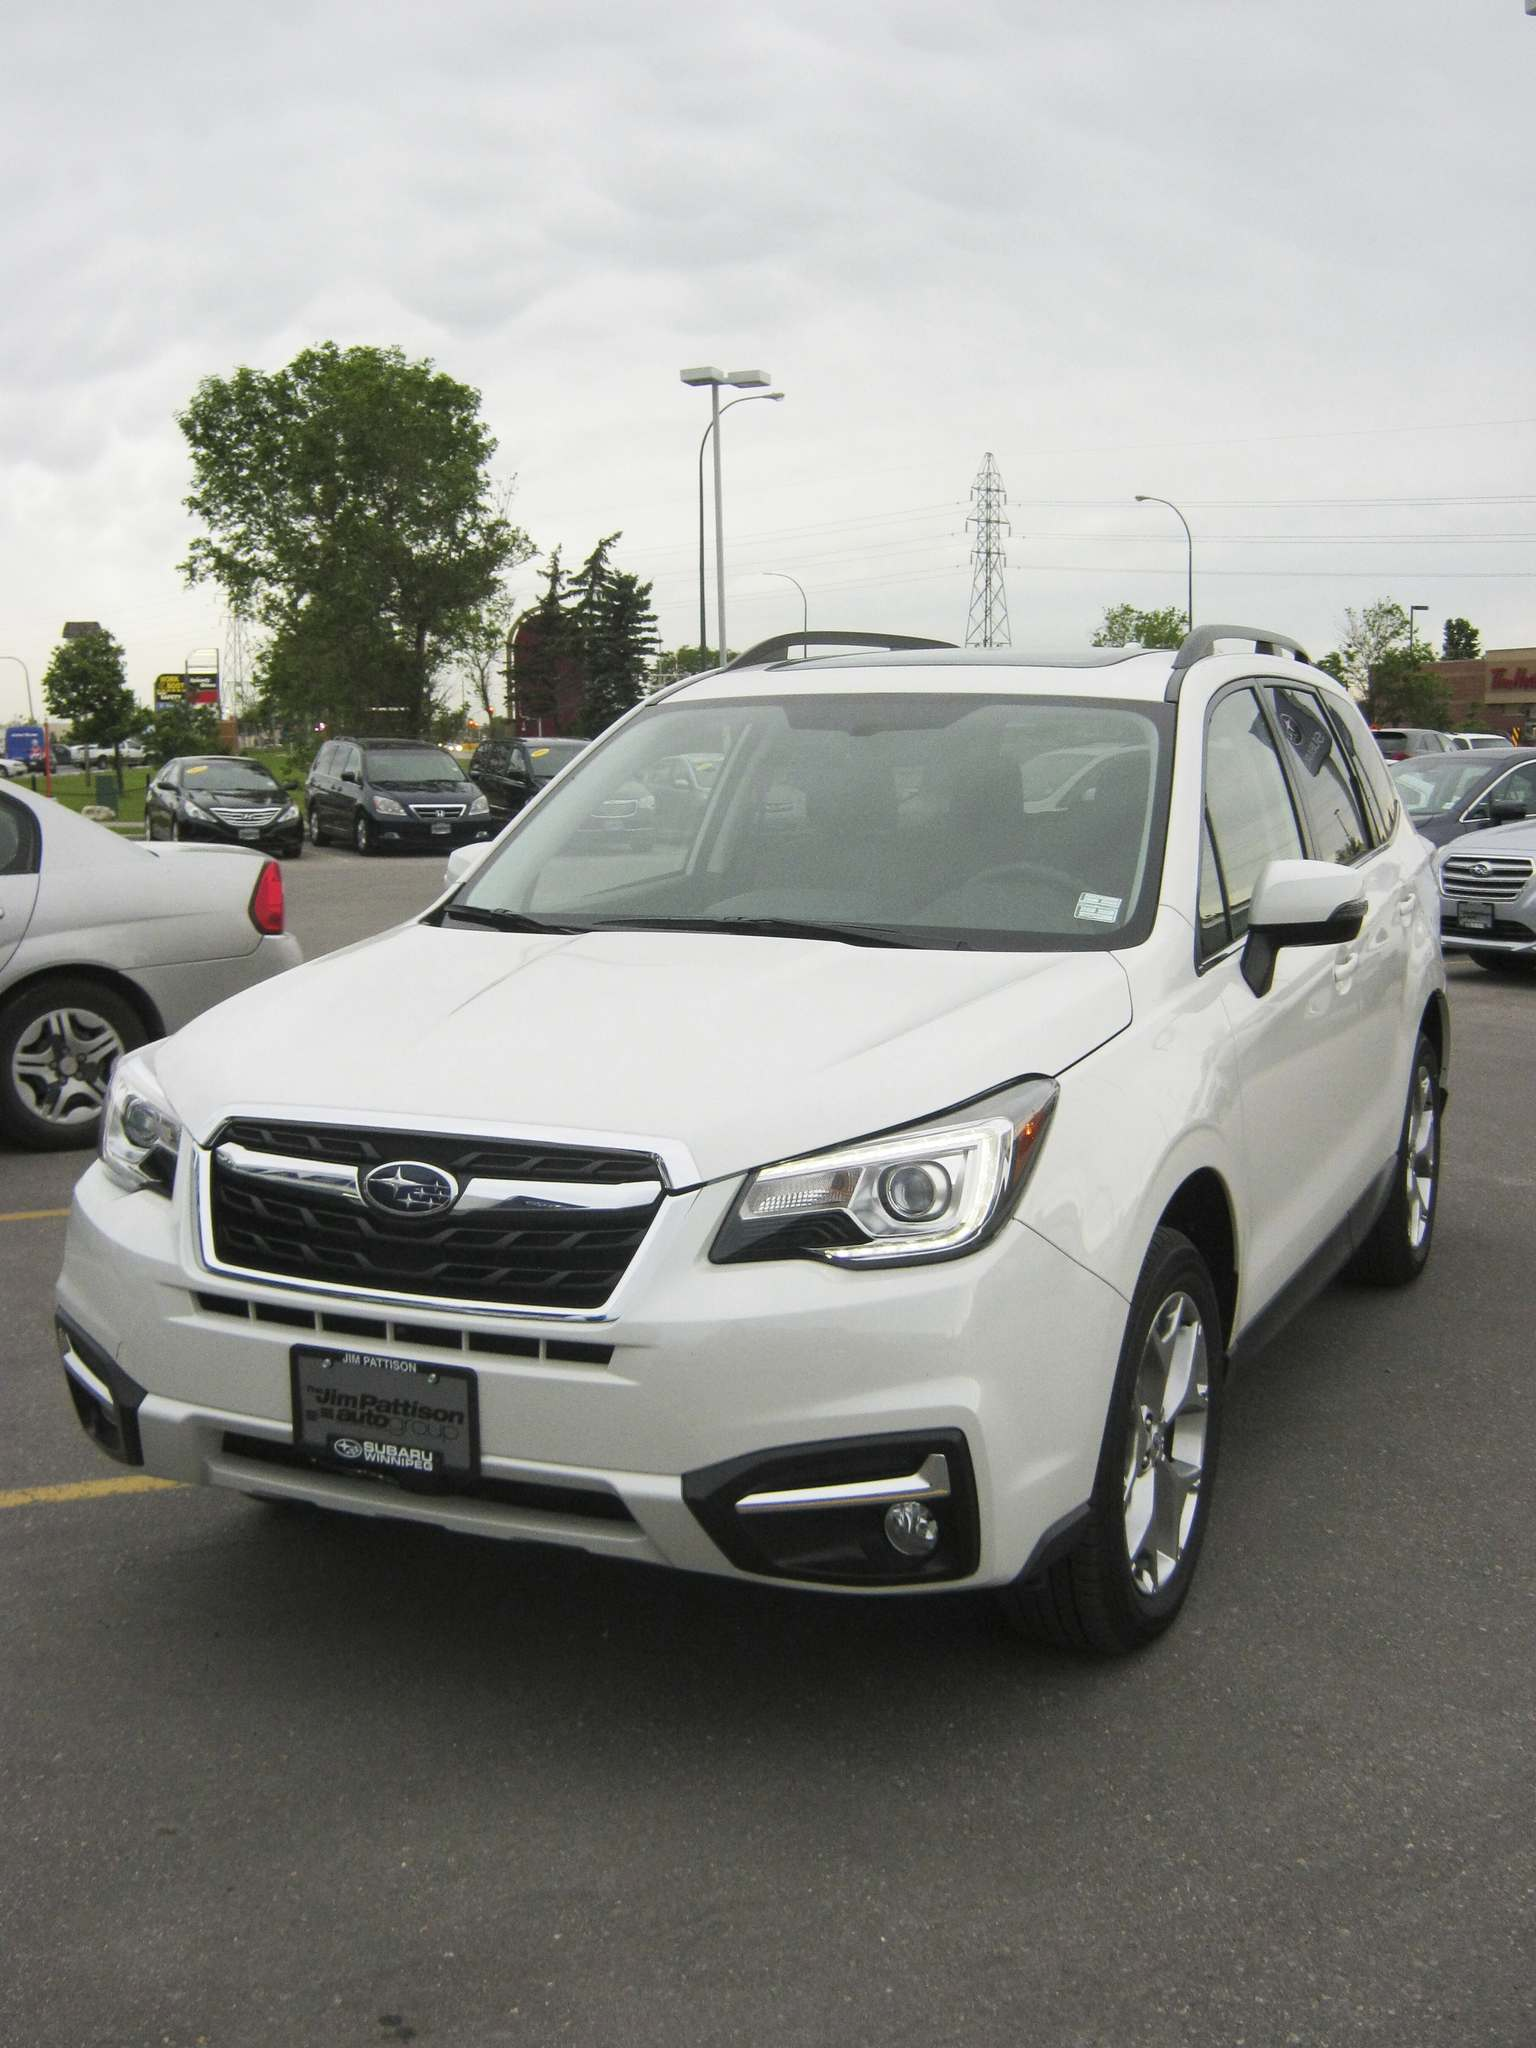 Myron Love / Winnipeg Free PressChanges for the 2017 Subaru Forester include available lane-keeping assist, blind-spot detection and rear cross-traffic alert.